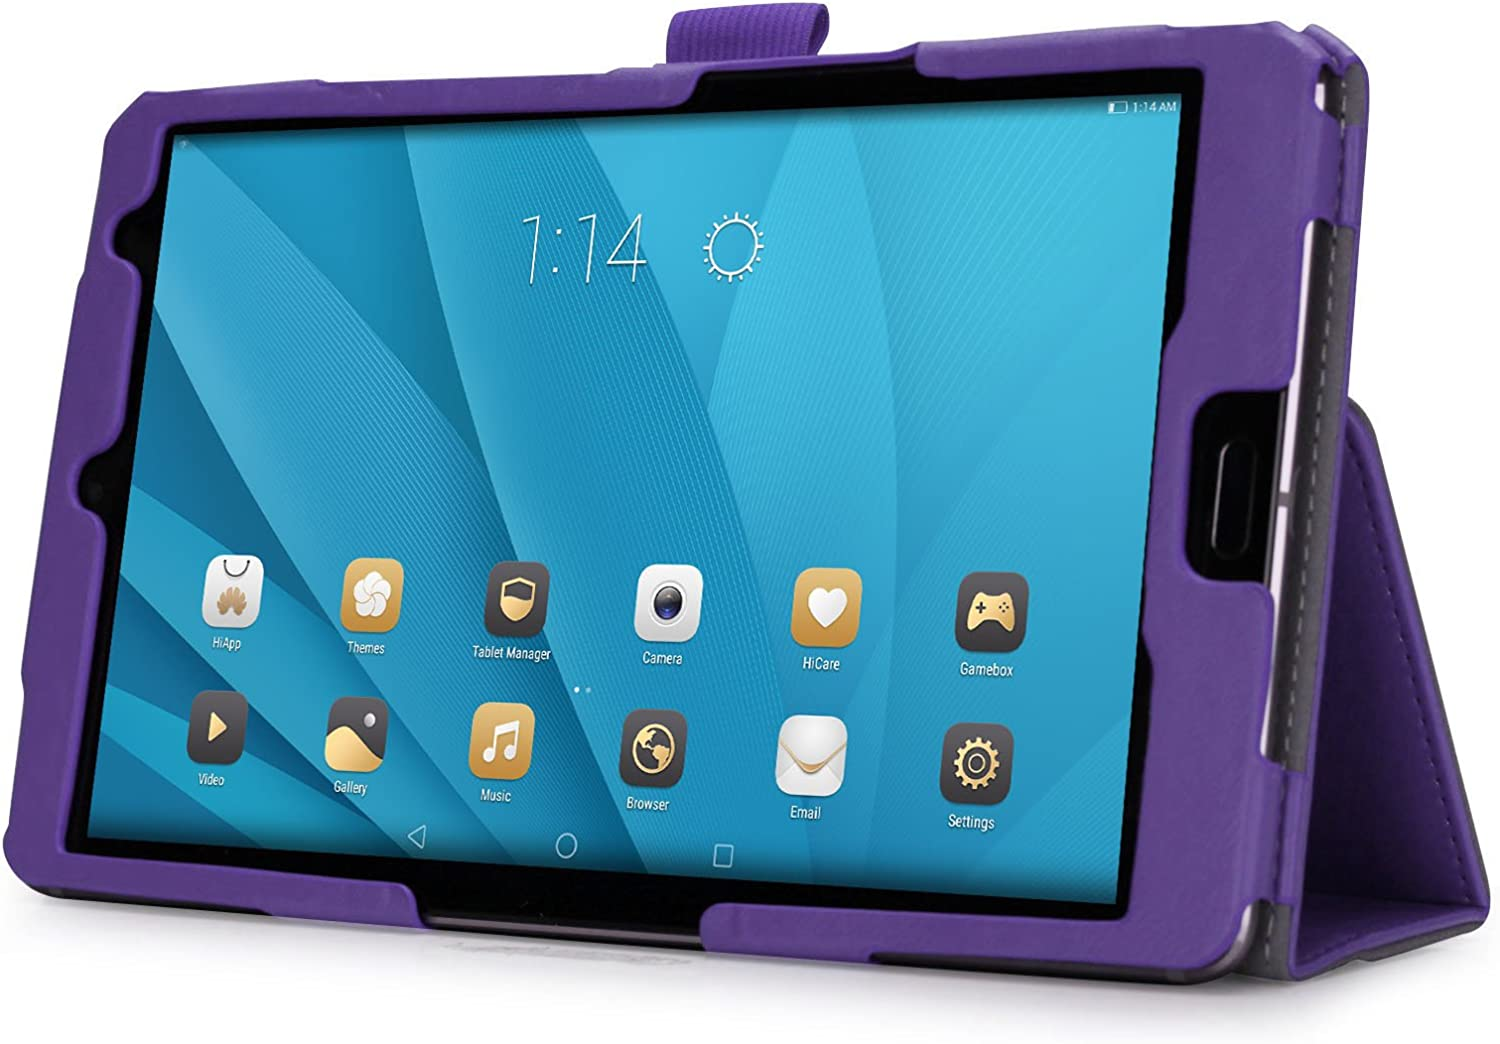 Premium PU Leather Book Style Folding Hand Strap Case with Kickstand Cover Card Slots Full Protection Shell Bummper for Huawei MediaPad M5 10.8 Tablet Huawei MediaPad M5 10.8 Case purple